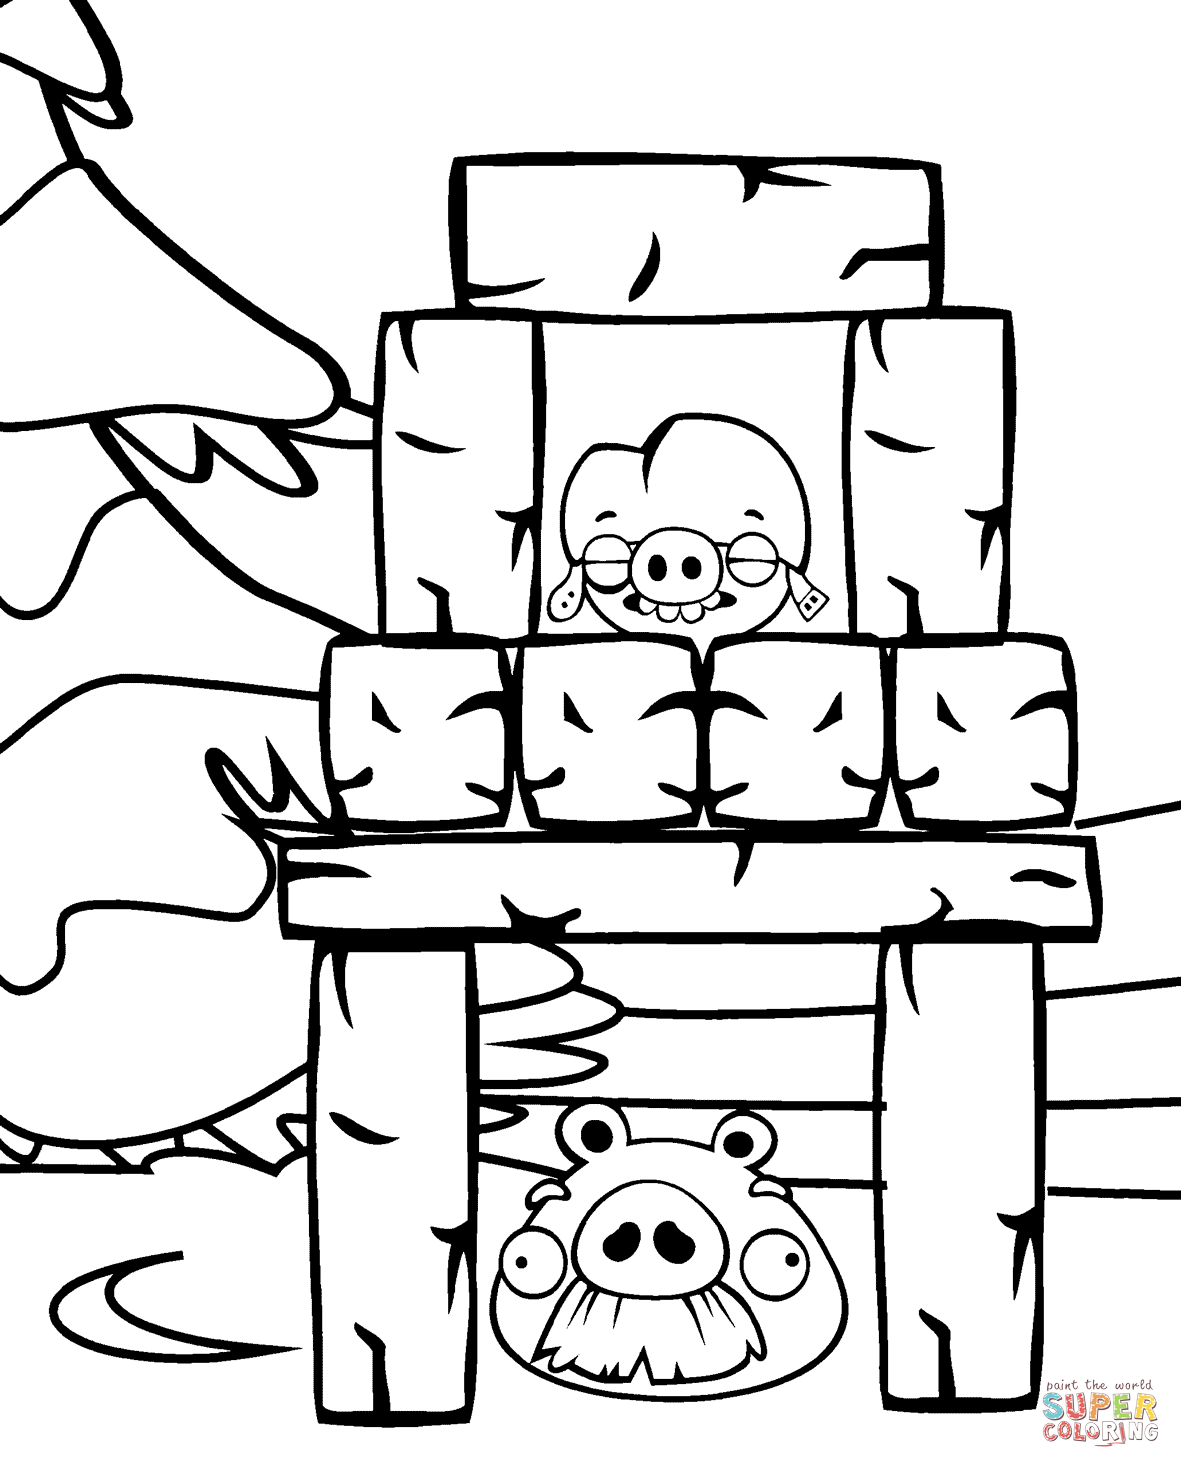 Foreman And Corporal Pig Coloring Page